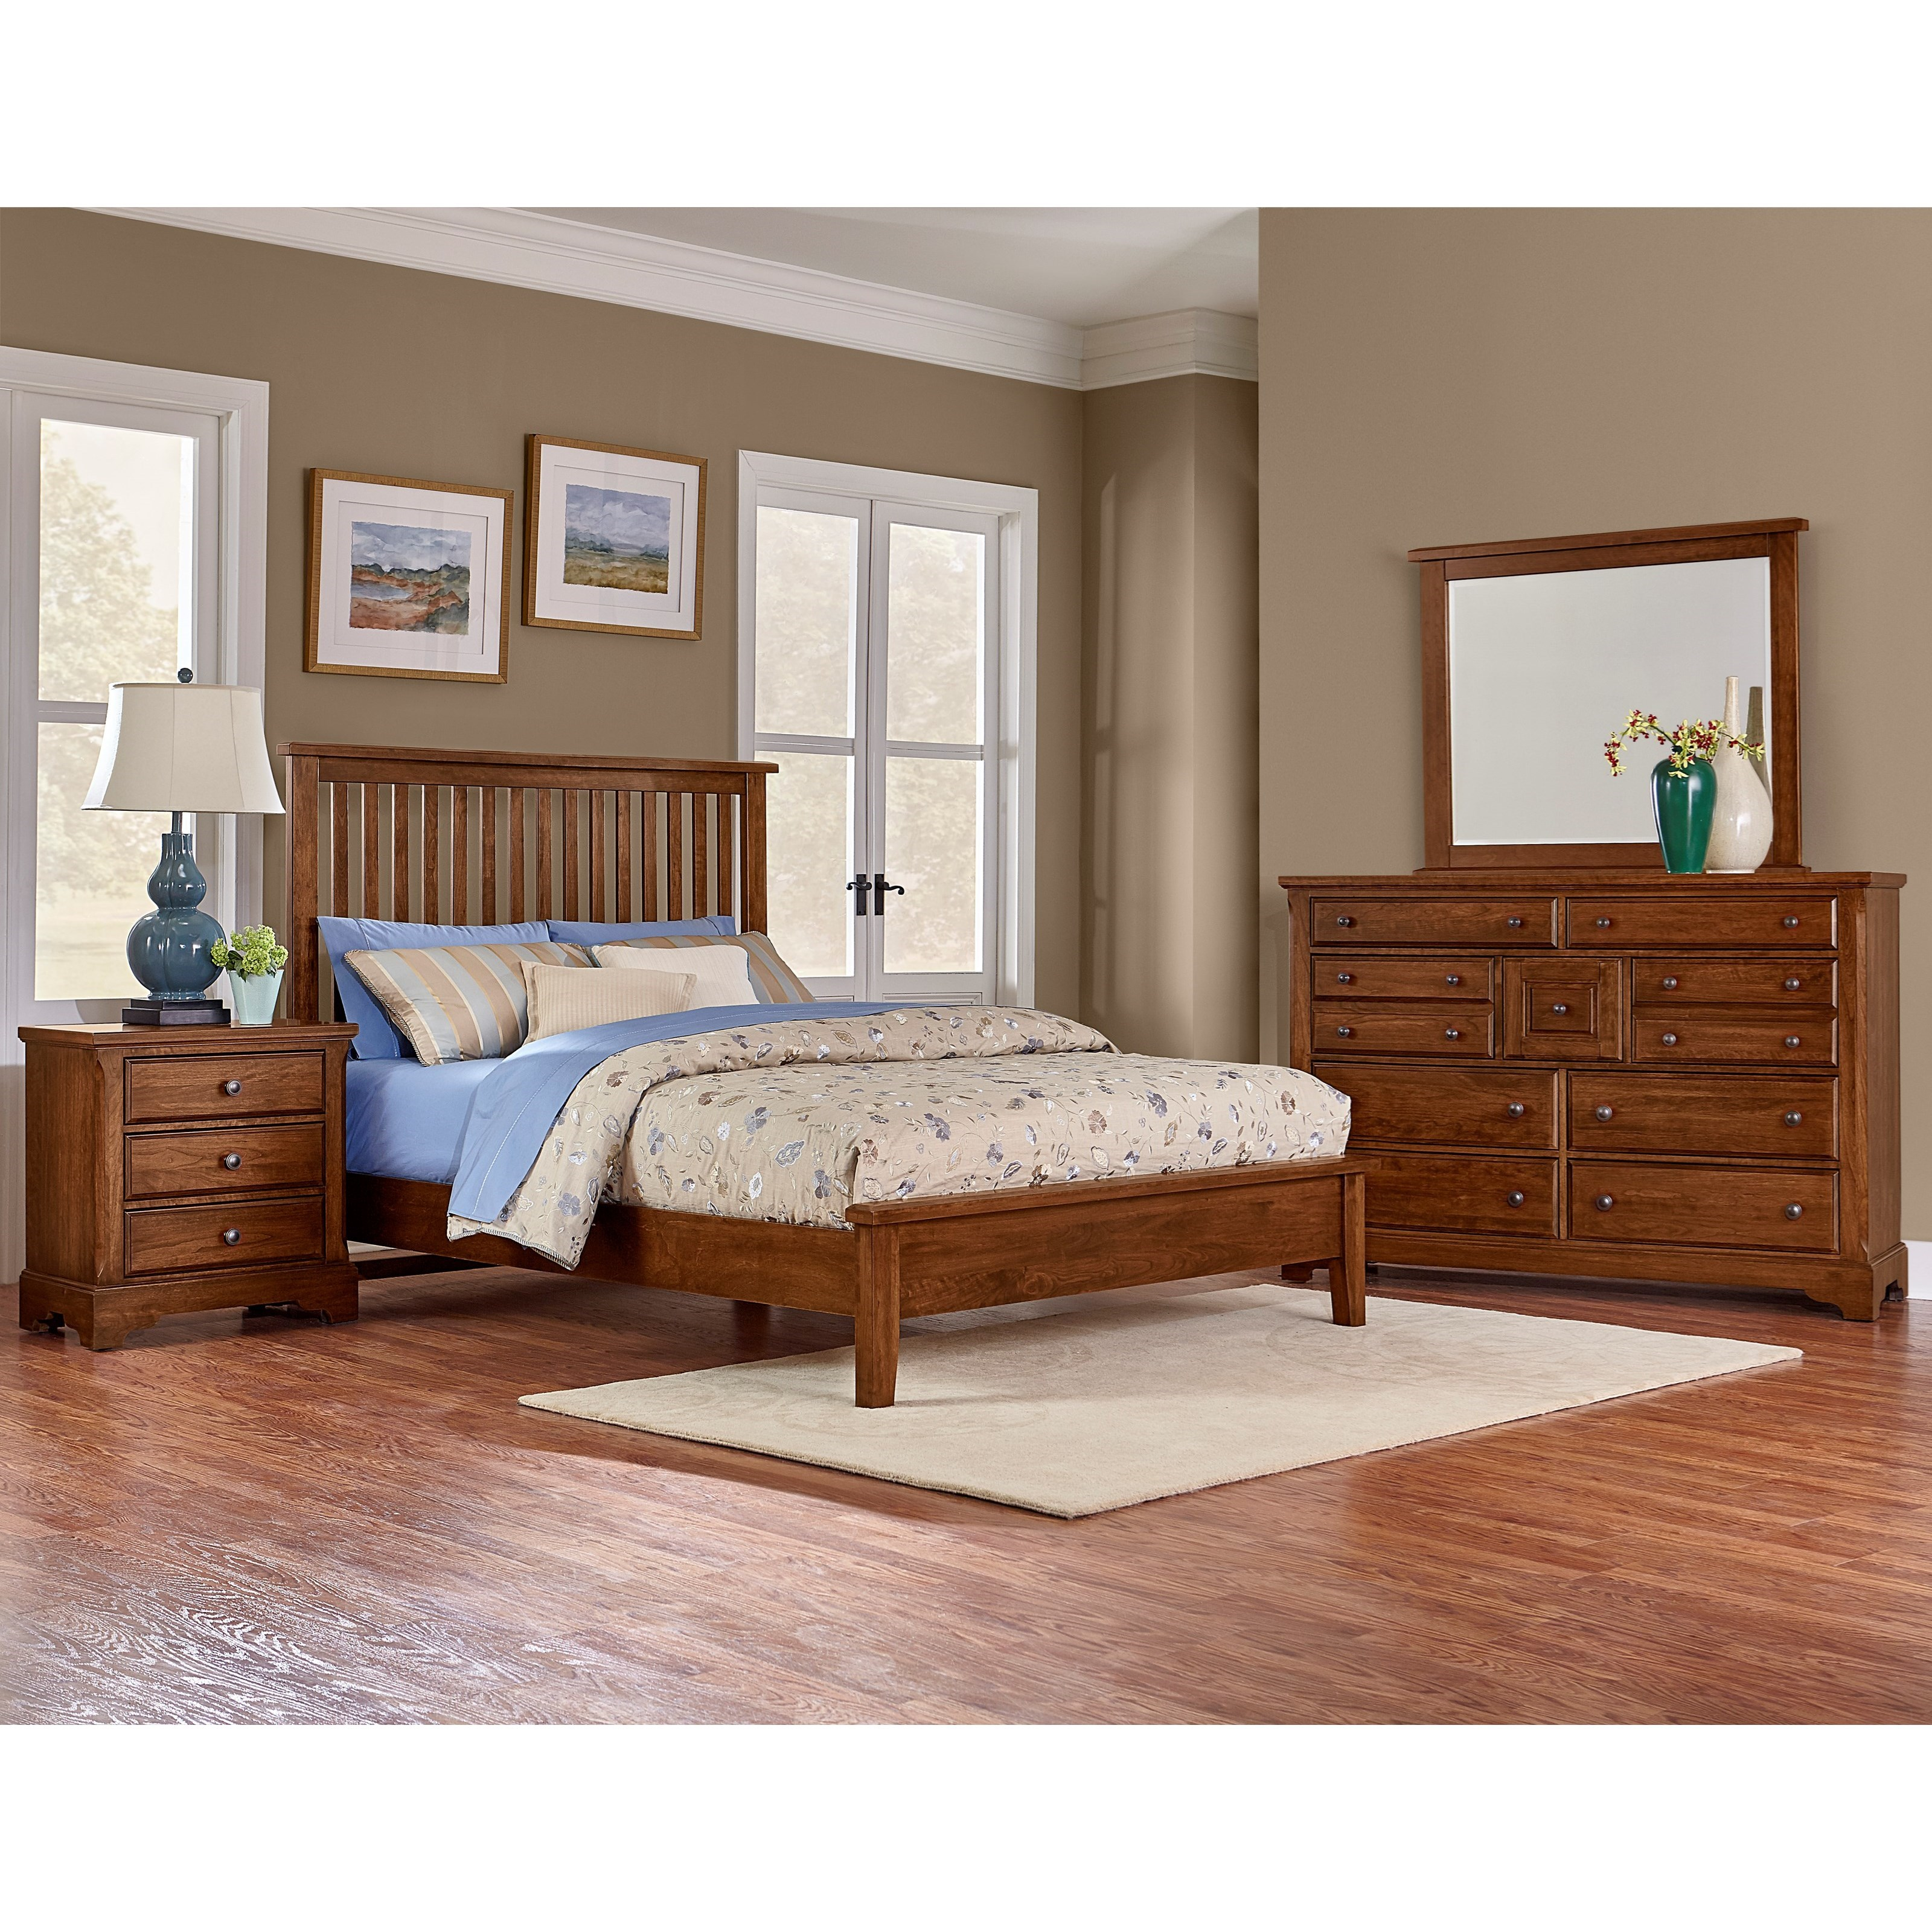 Artisan Choices King Bedroom Group by Artisan & Post at Northeast Factory Direct